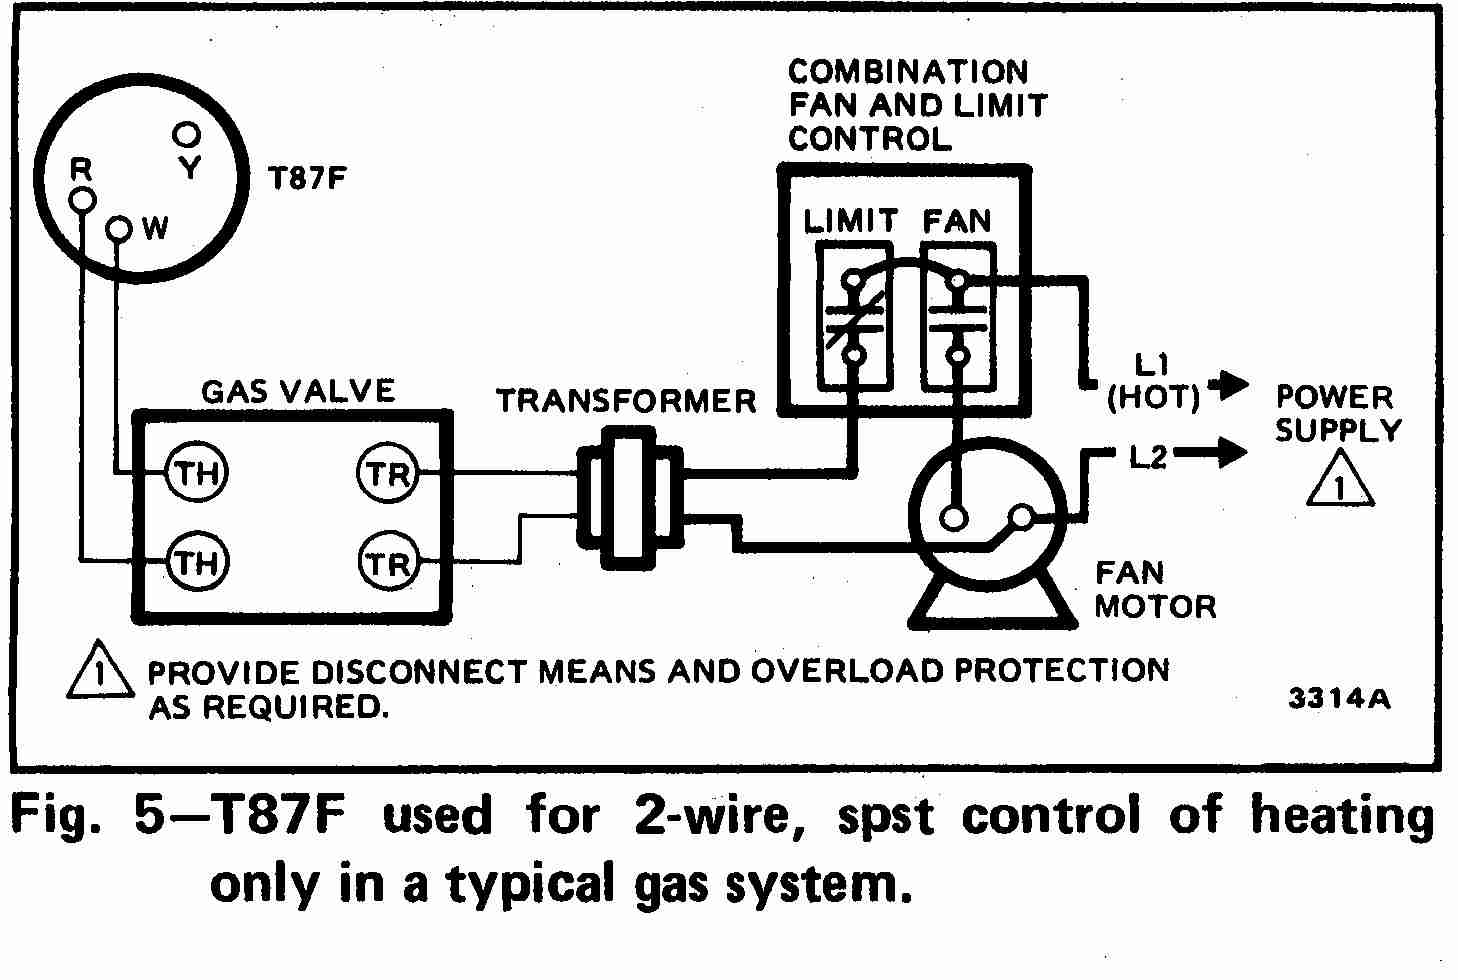 wrg 1757] coleman evcon thermostat manual pdf 2019 ebook libraryhoneywell t87f thermostat wiring diagram for 2 wire, spst control of heating only in